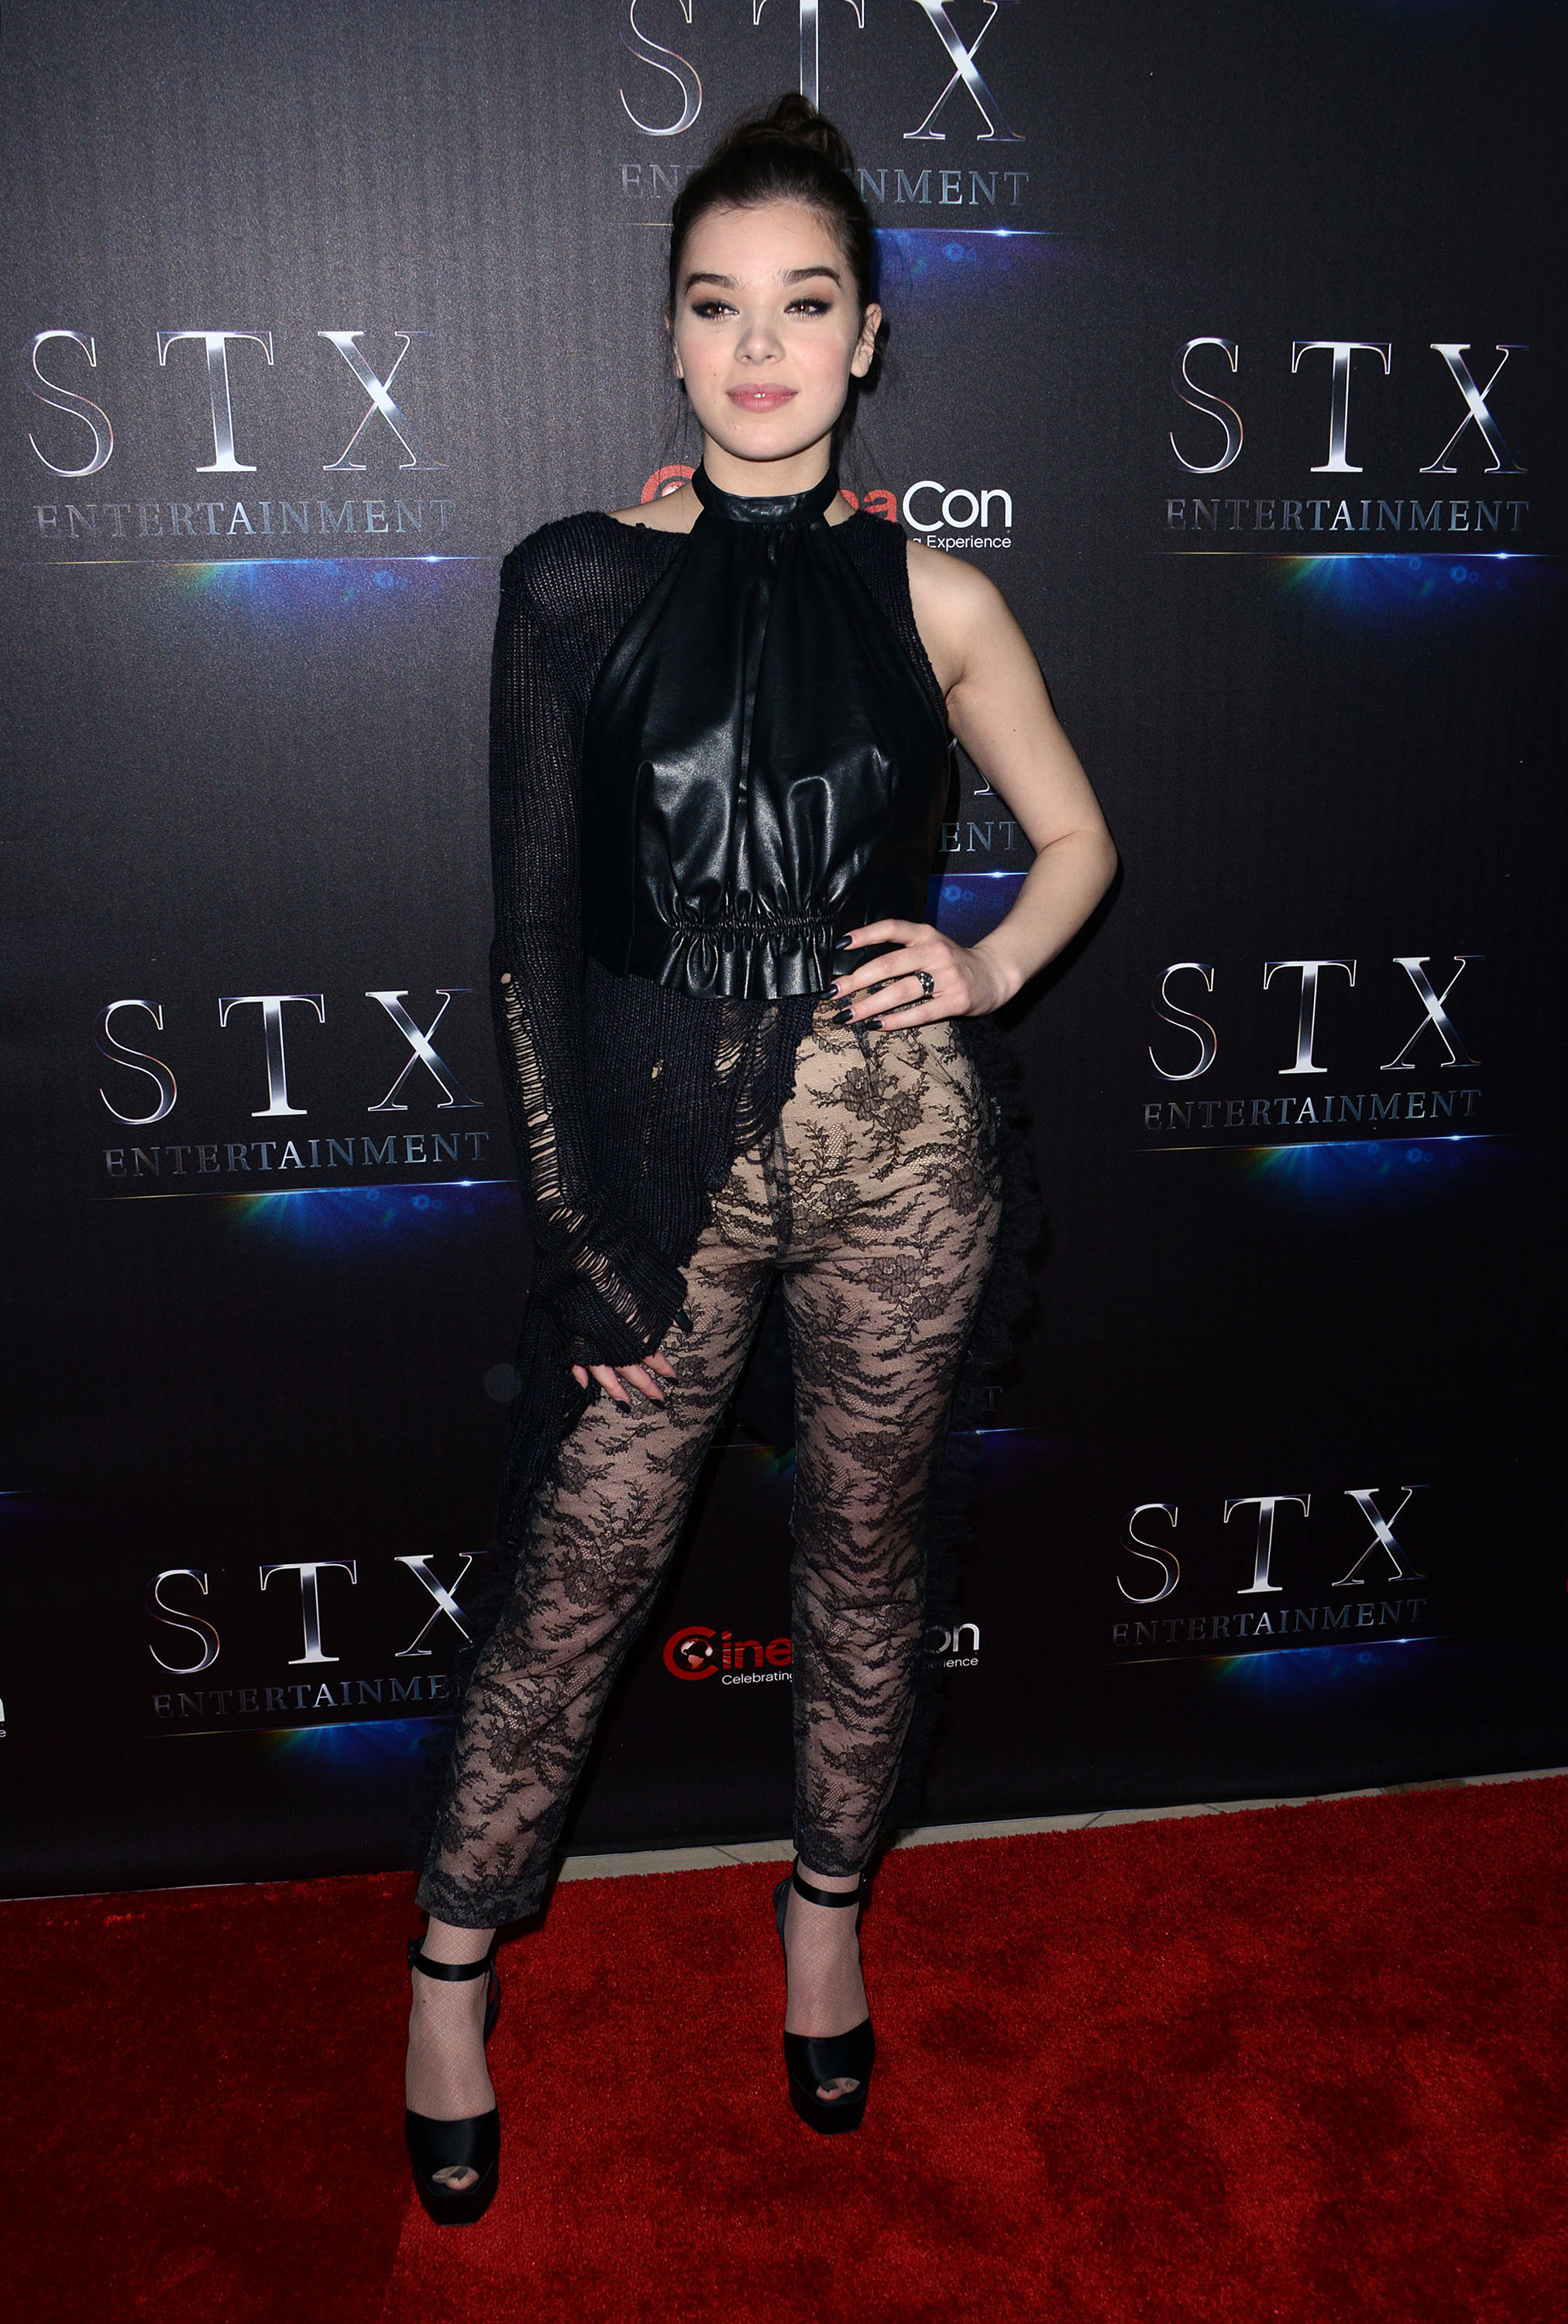 Celebrities Attend The 'State Of The Industry' And 'STZX Entertainment' Presentations In Las Vegas